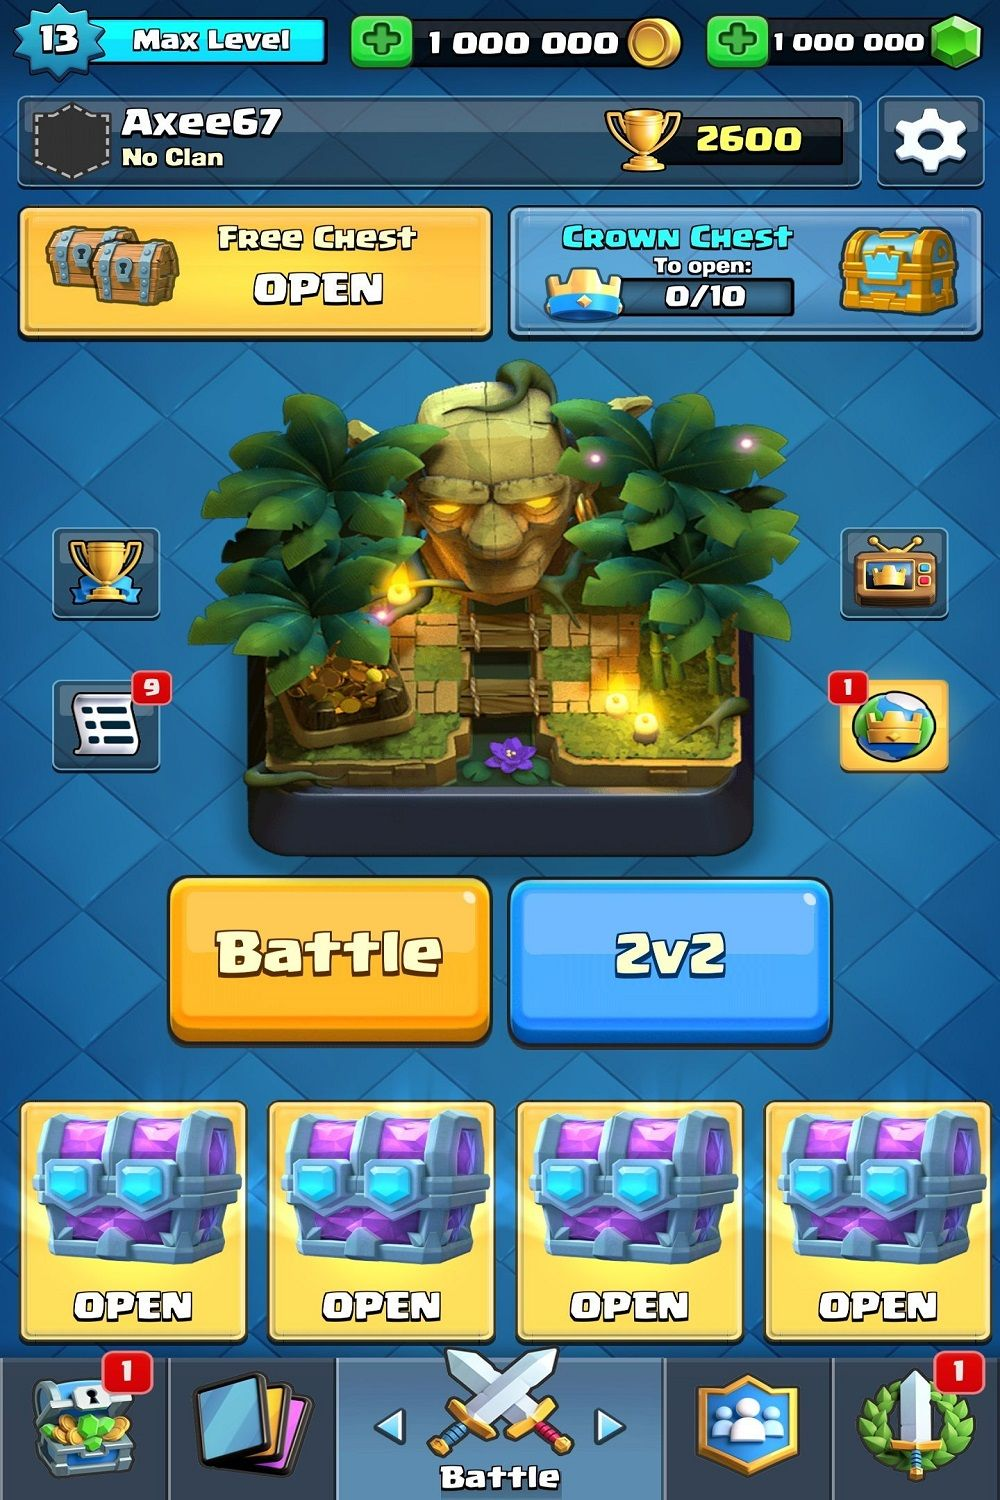 Get Clash Royale Unlimited Gems For Free! 100% Working [20 Oct 2020]